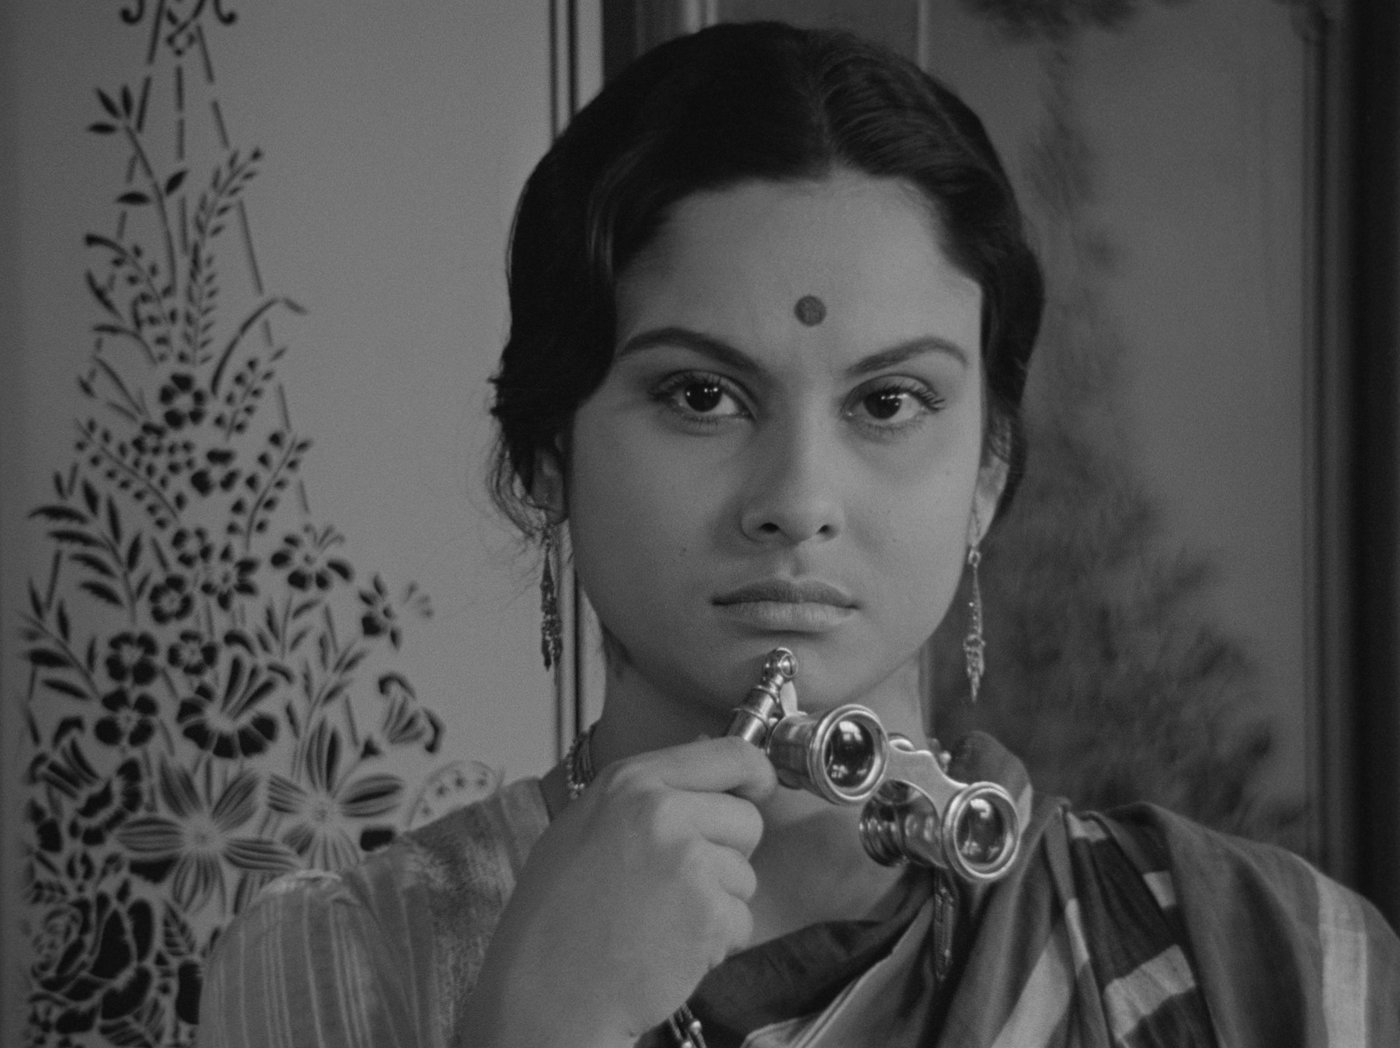 His Dark Materials: A young feminist discovers Satyajit Ray - Reads